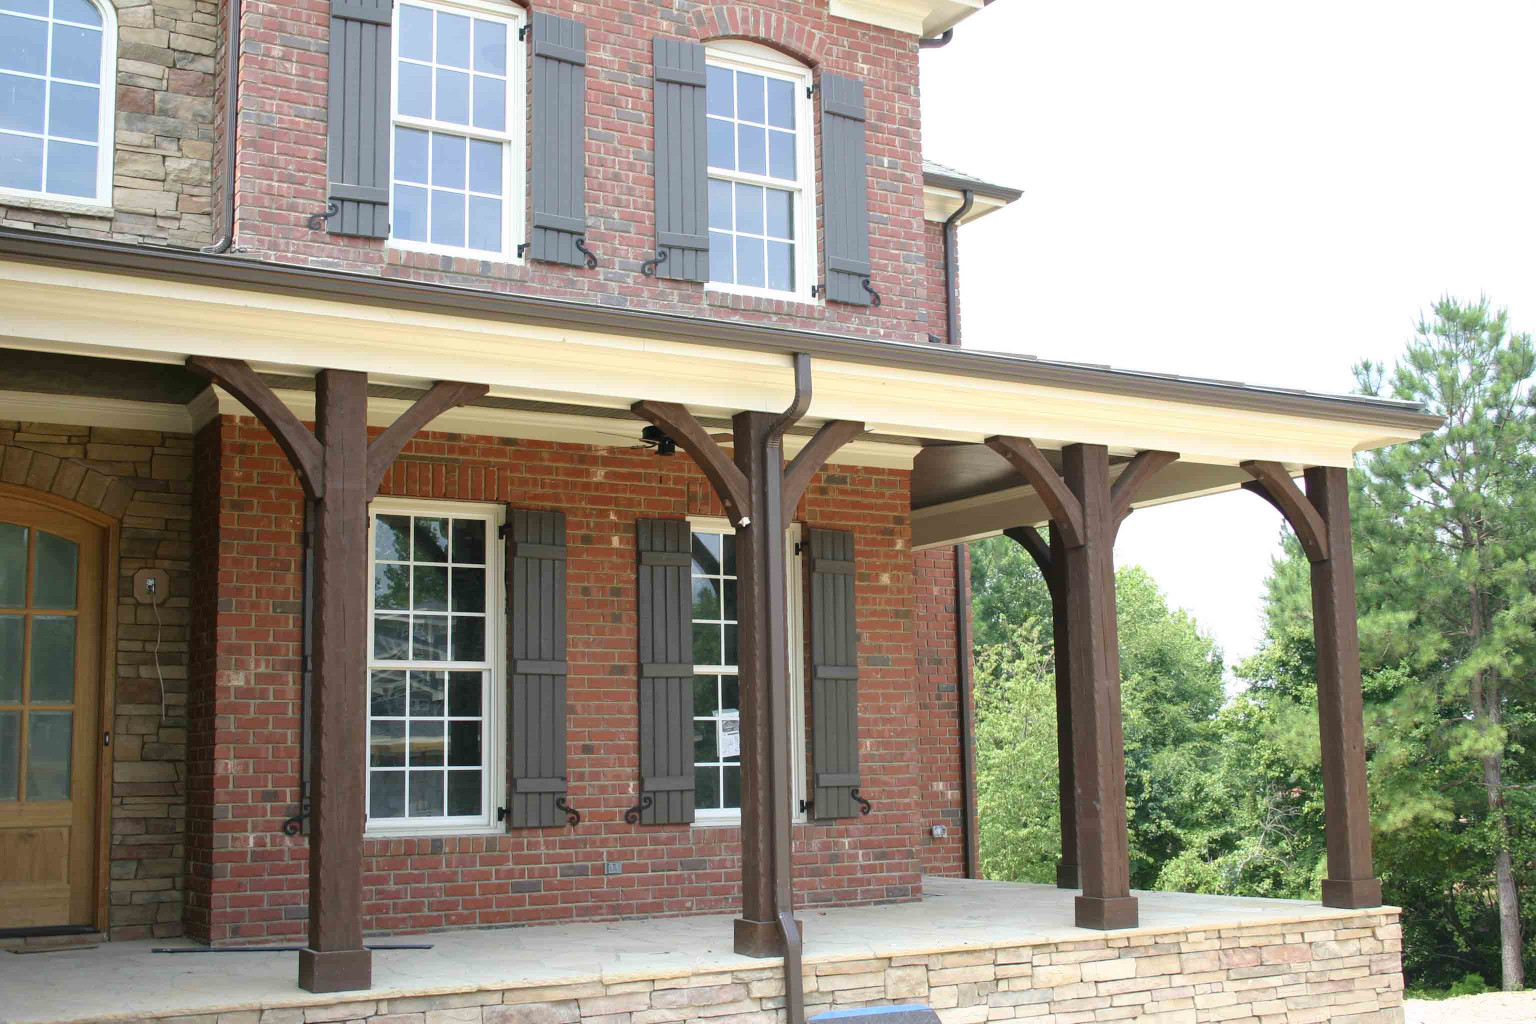 The wood braces and wood posts create our Standard Porch Kit.